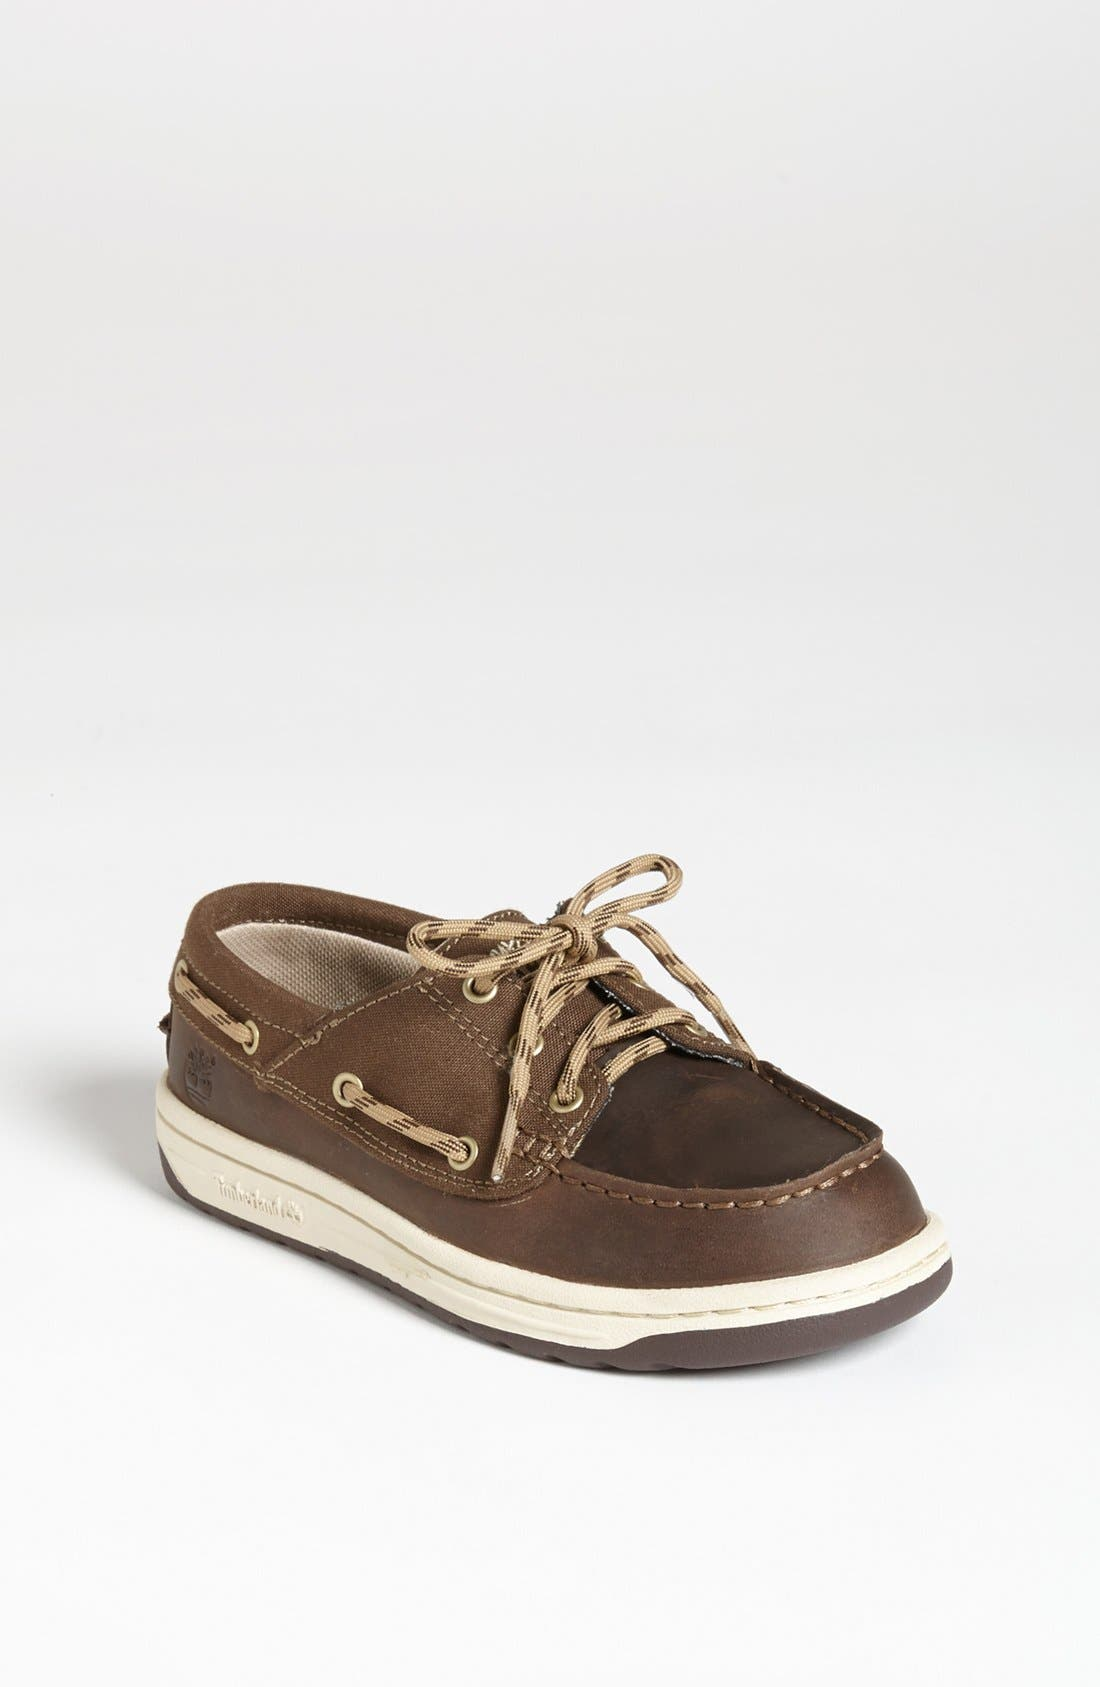 Alternate Image 1 Selected - Timberland Earthkeepers® 'Ryan' Boat Shoe (Little Kid & Big Kid)